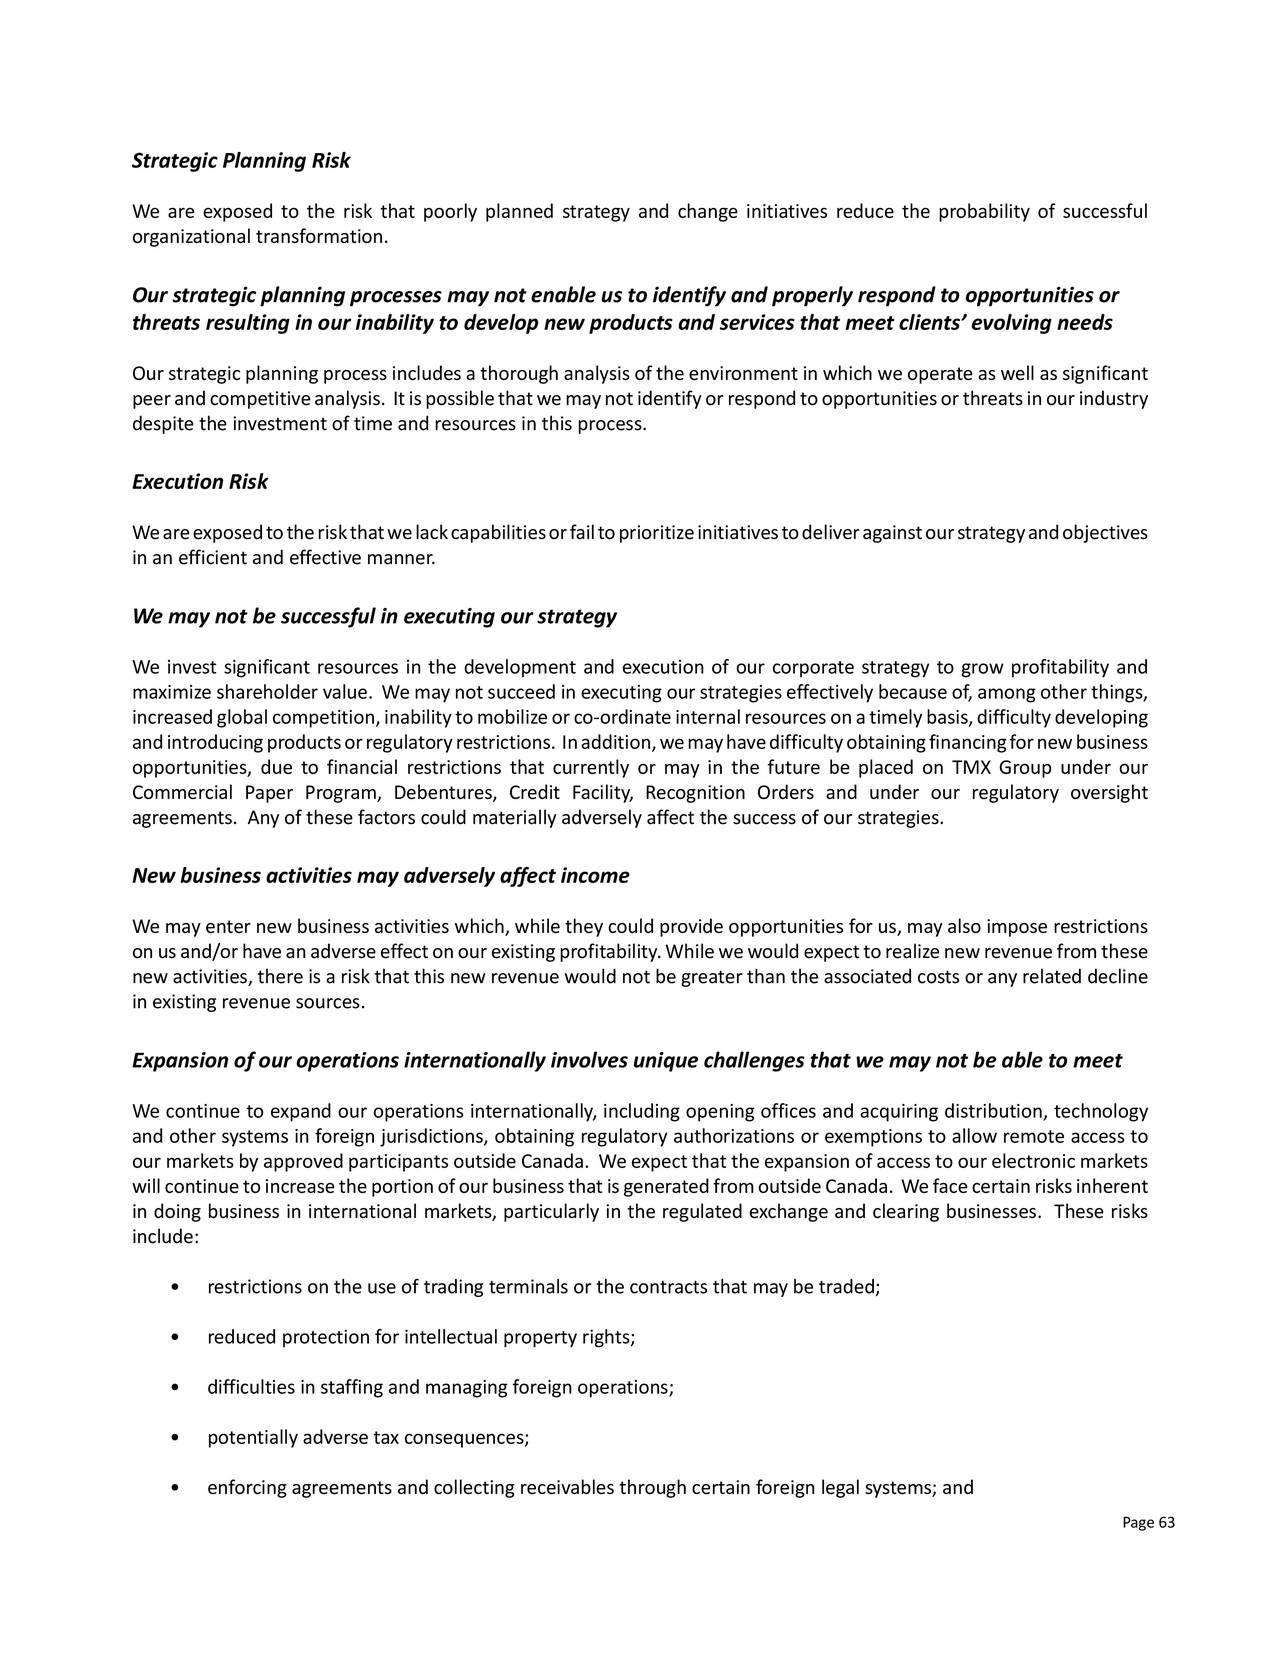 organizational transformation q a paper Wps@efzghr working paper series paper no 08-07 tomislav hernaus generic process transformation model: transition to process- based organization led into question the whole process paradigm how to move toward process-based organization design, the paper takes systematic approach over existing.